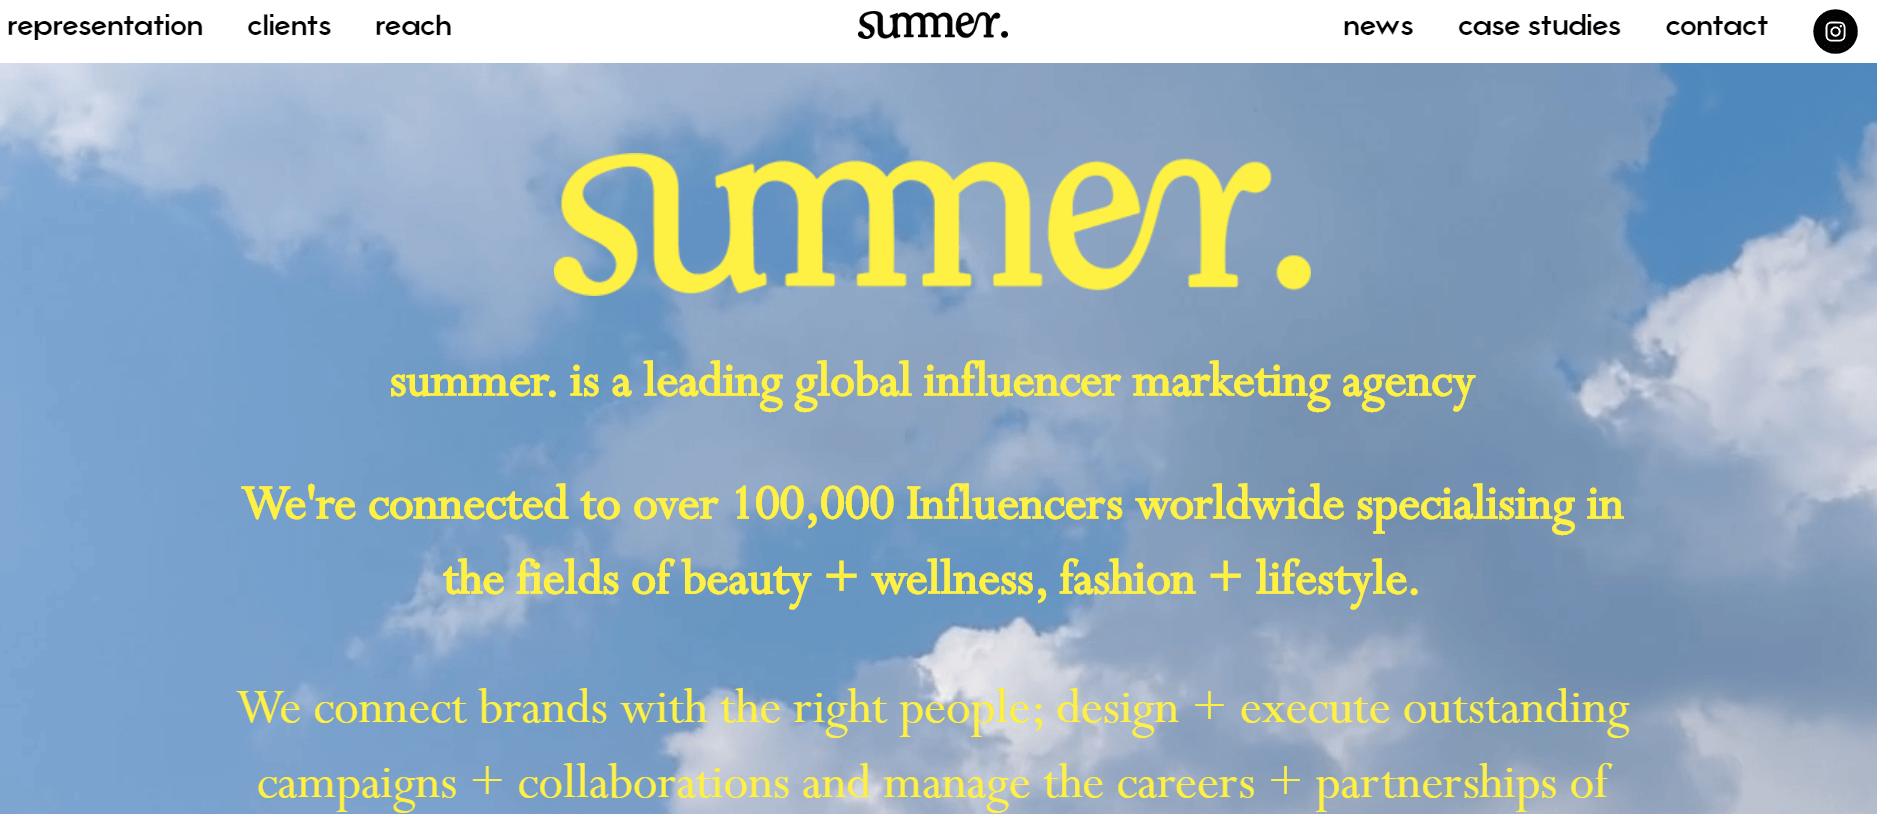 This is Summer Influencer Marketing Agency